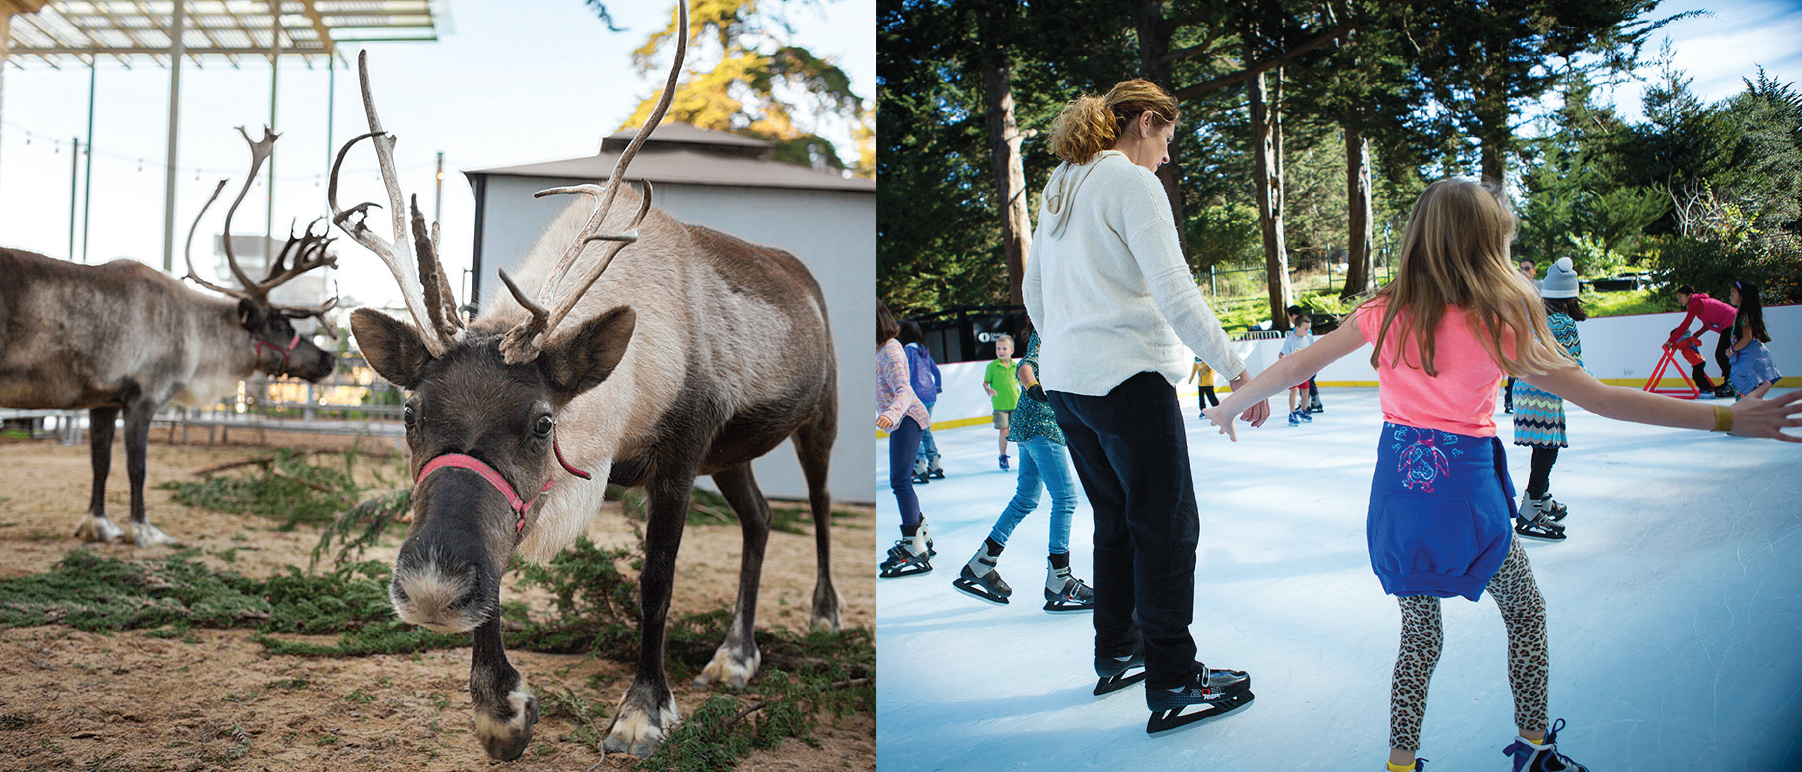 Left: Reindeer are seen at the California Academy of Sciences on Dec. 5, 2013.Right: Children skate around the new ice rink at the academy on Nov. 21. (Courtesy Kathryn Whitney/California Academy of Sciences)